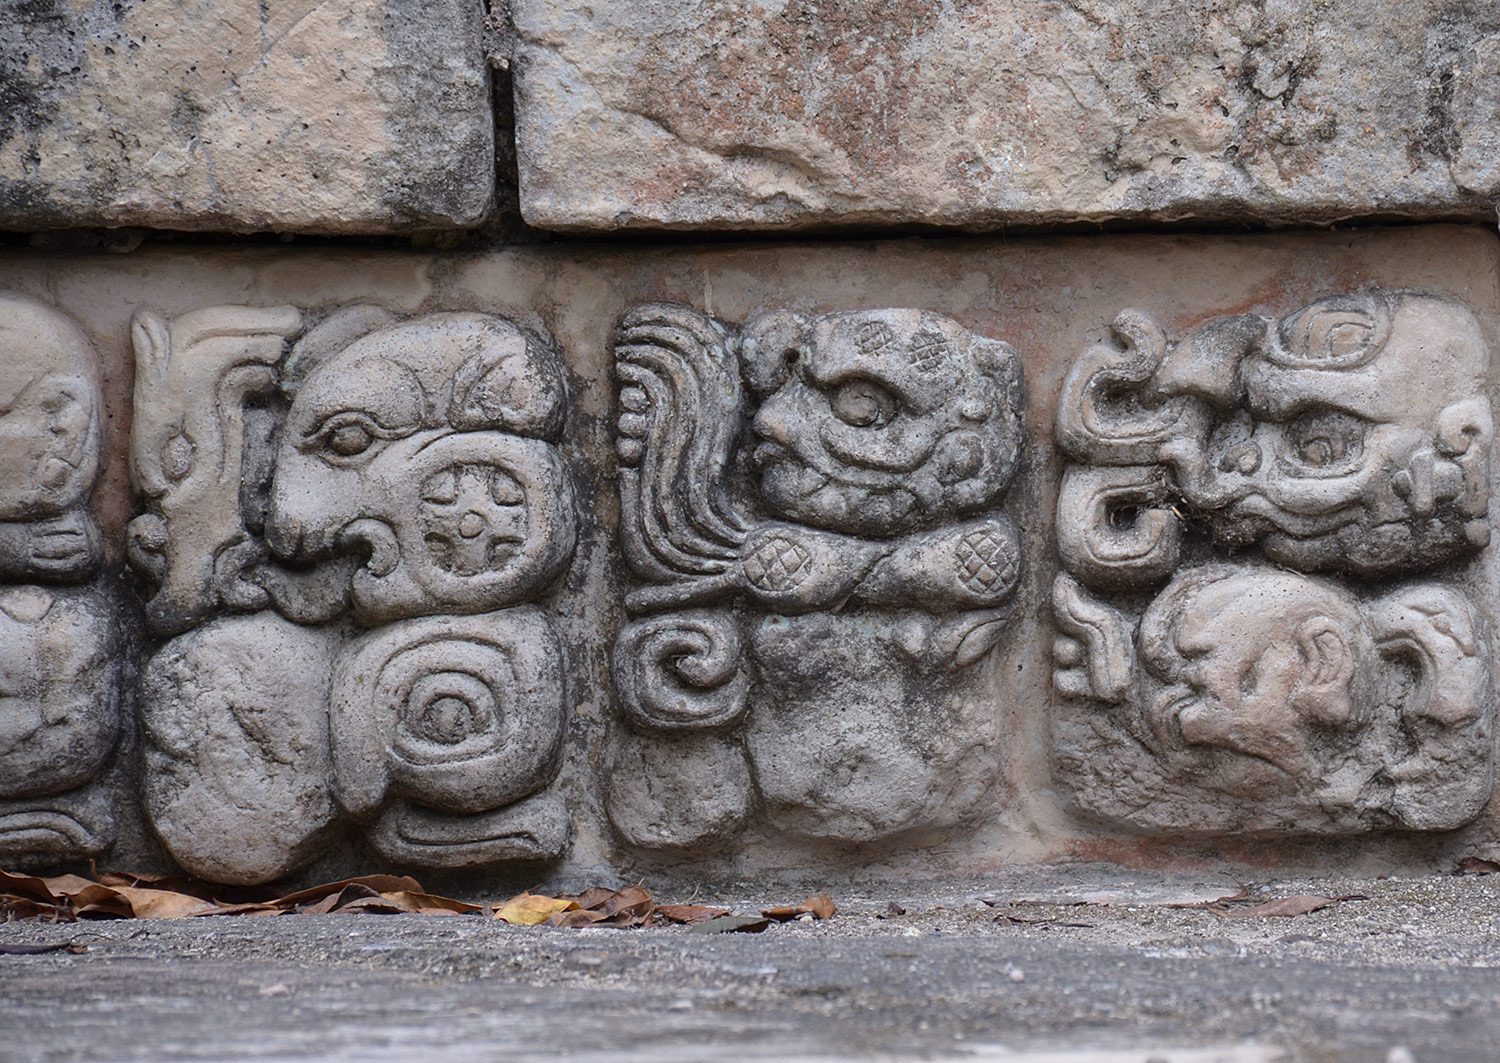 Mayan hieroglyphs on stone. The archaeological site of Copan, Honduras.